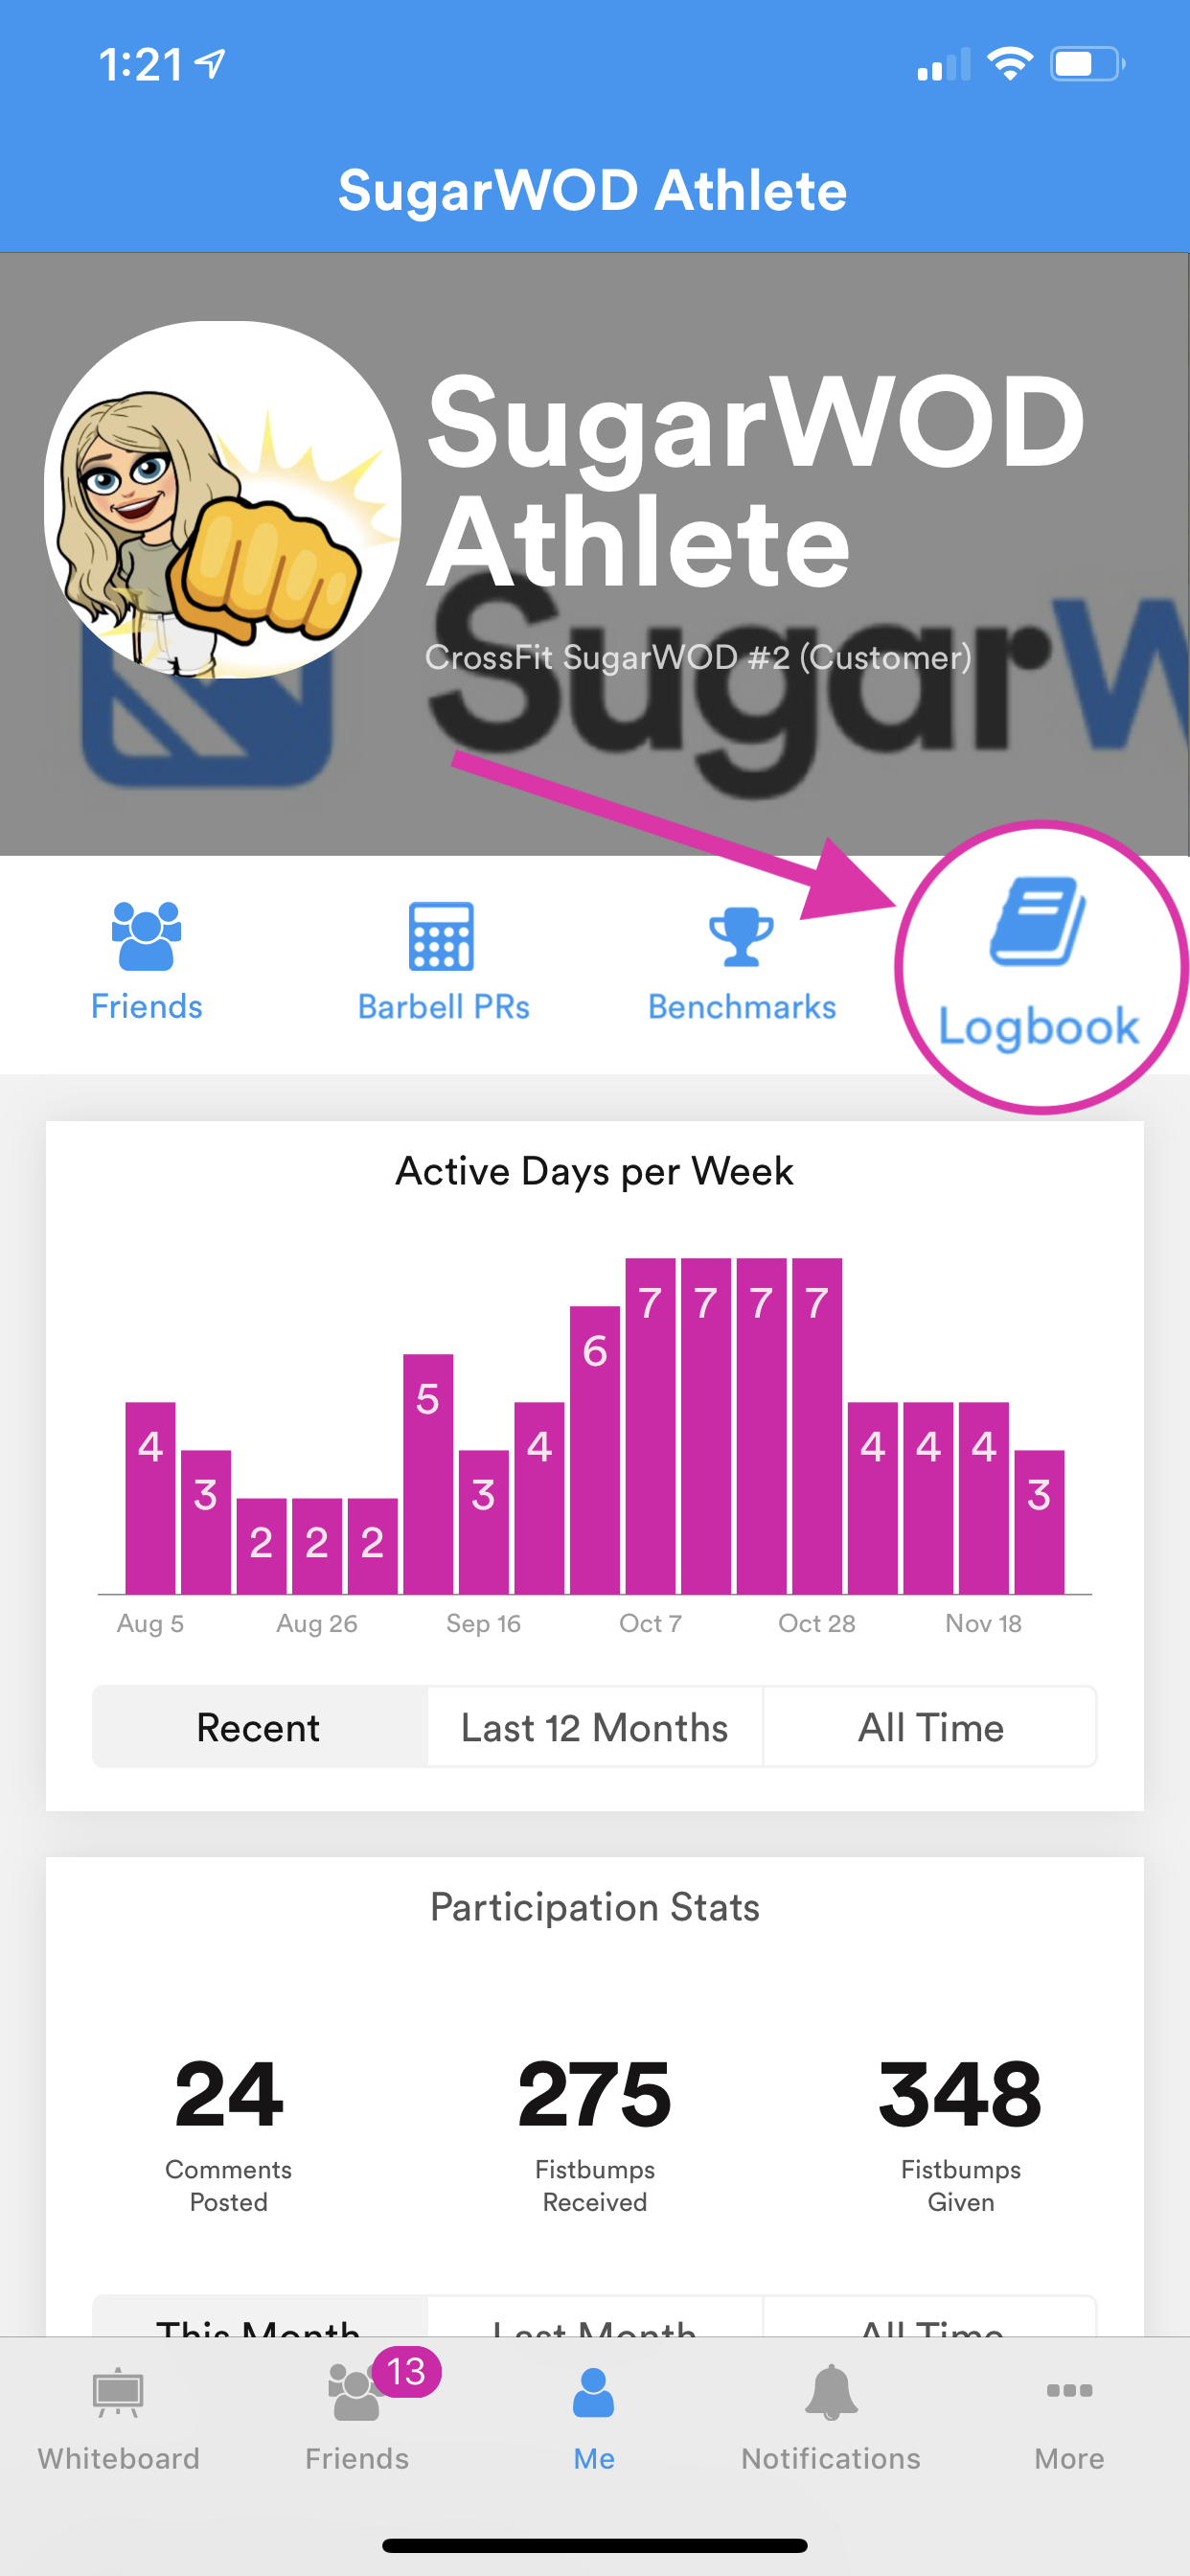 How to: Log a personal workout to my Logbook – SugarWOD